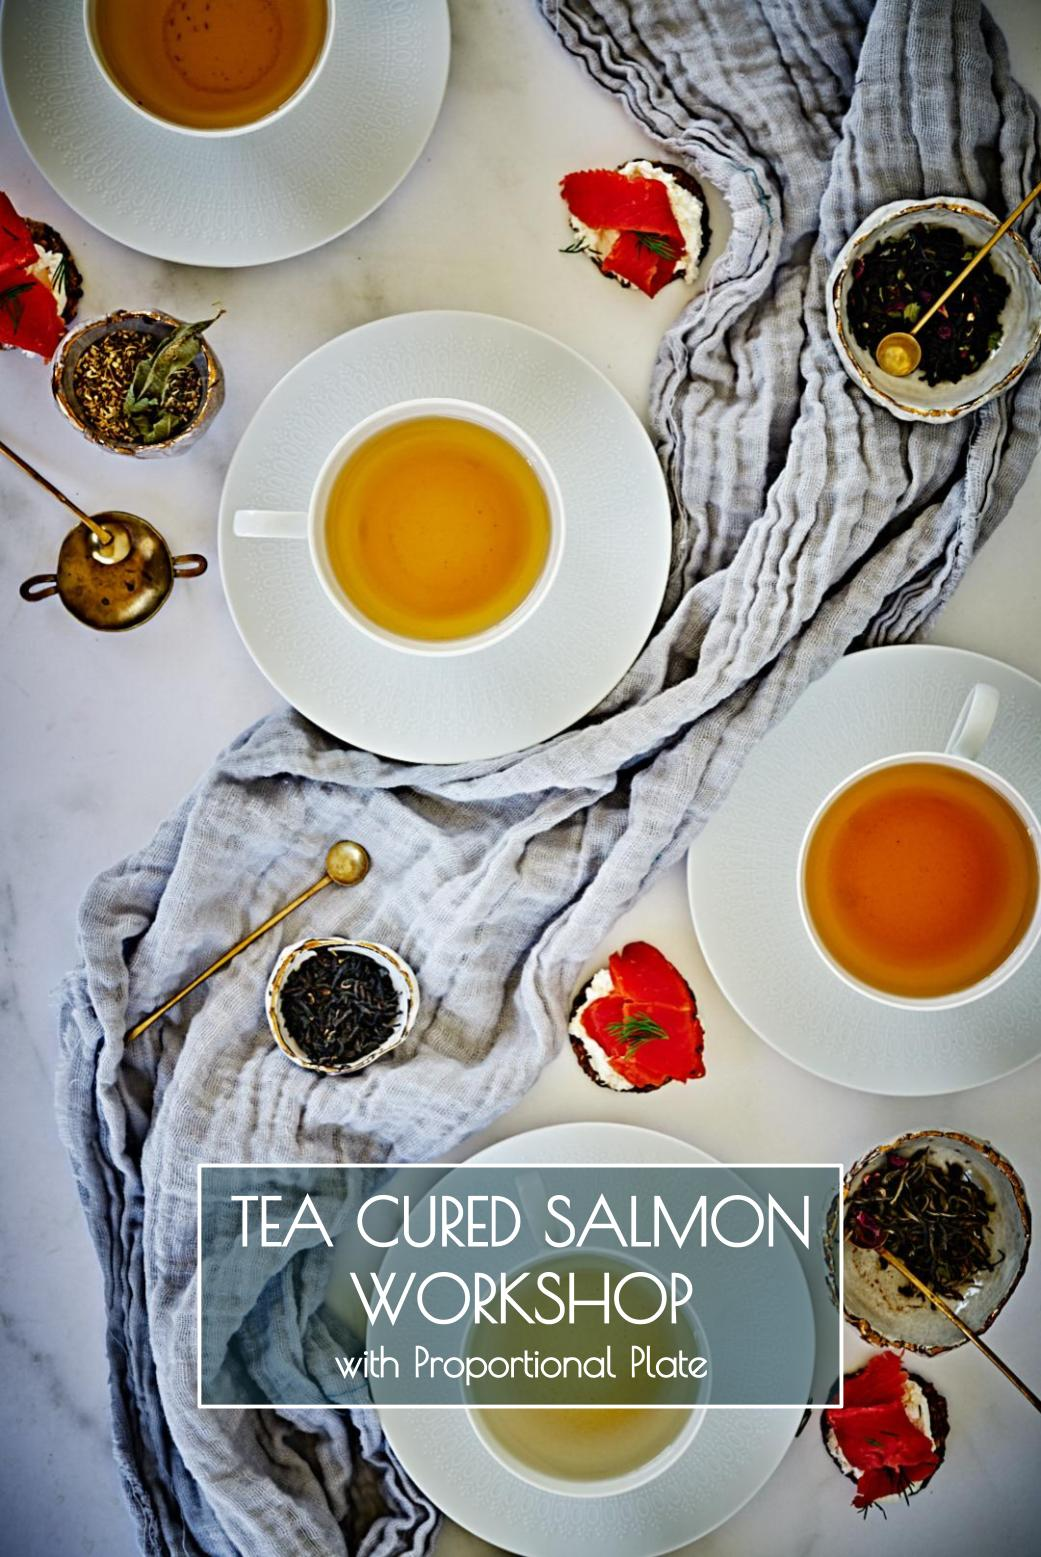 Tea Cured Salmon Tasting & Workshop | Join Candice on Saturday, July 13, 2019 for a tea cured salmon workshop in Portland, OR with delicious snacks, tea and salmon tasting, & hands-on curing | Proportional Plate